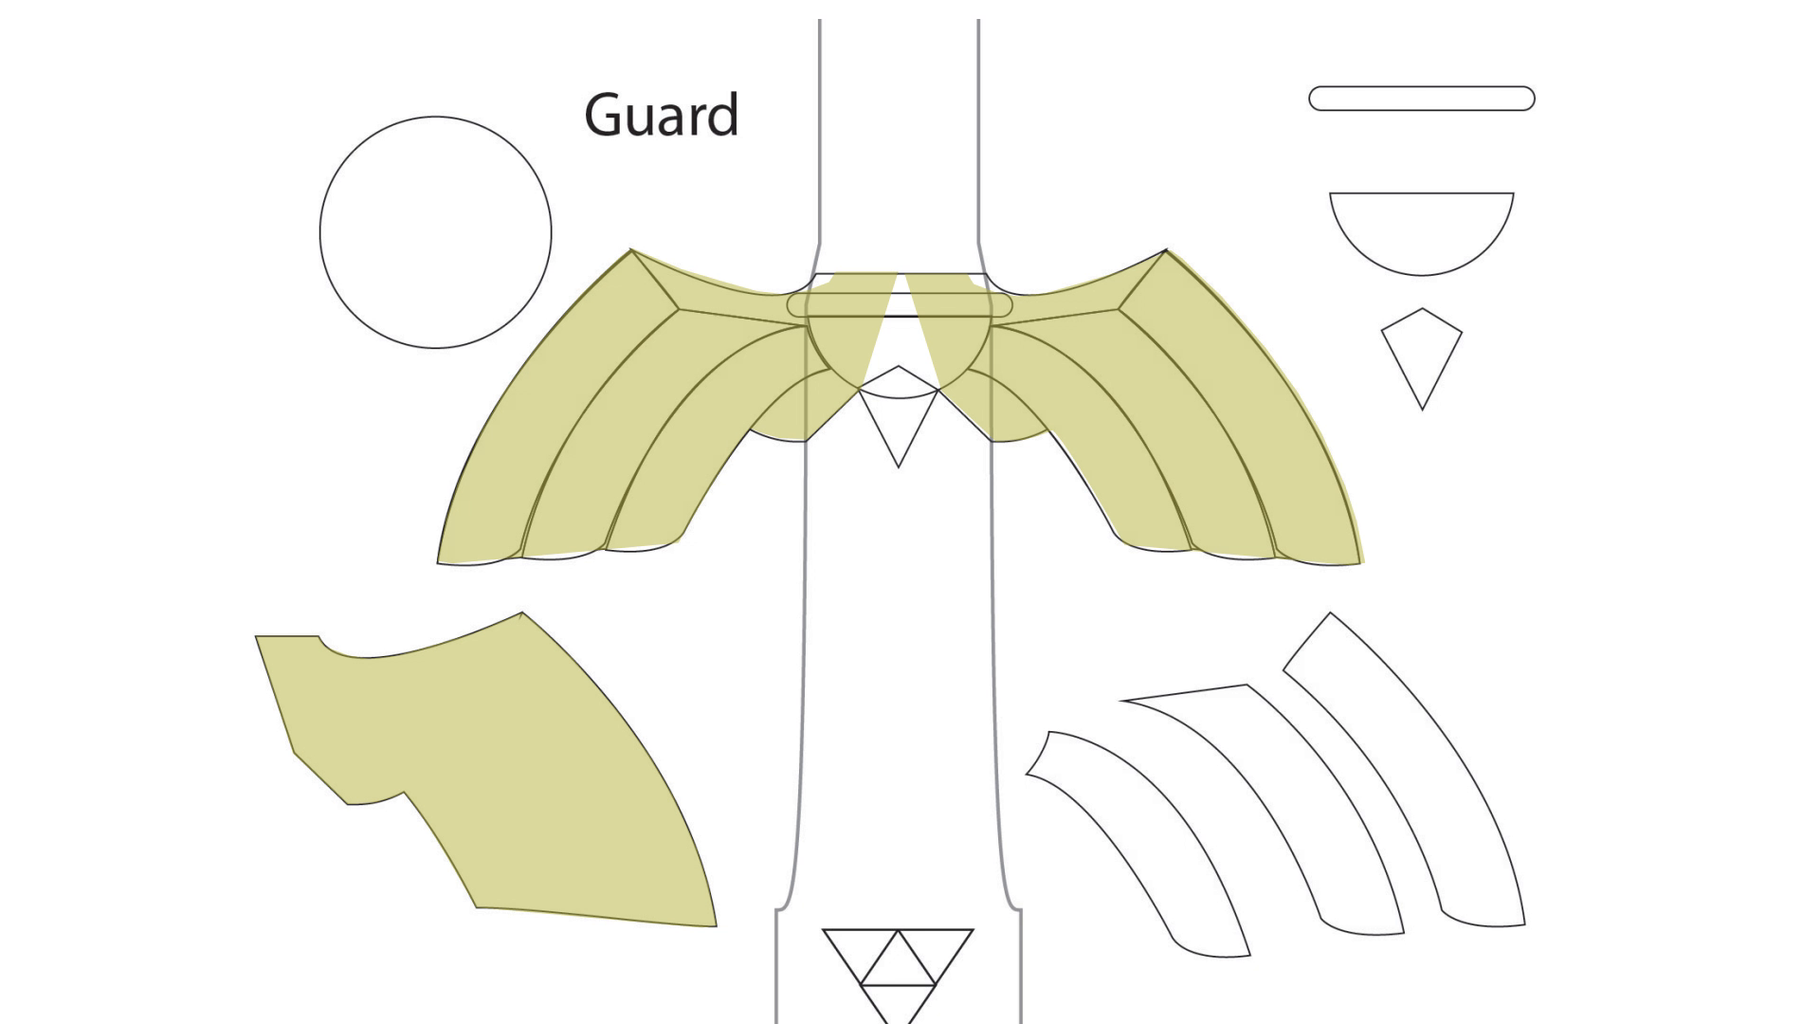 Shaping the Guard